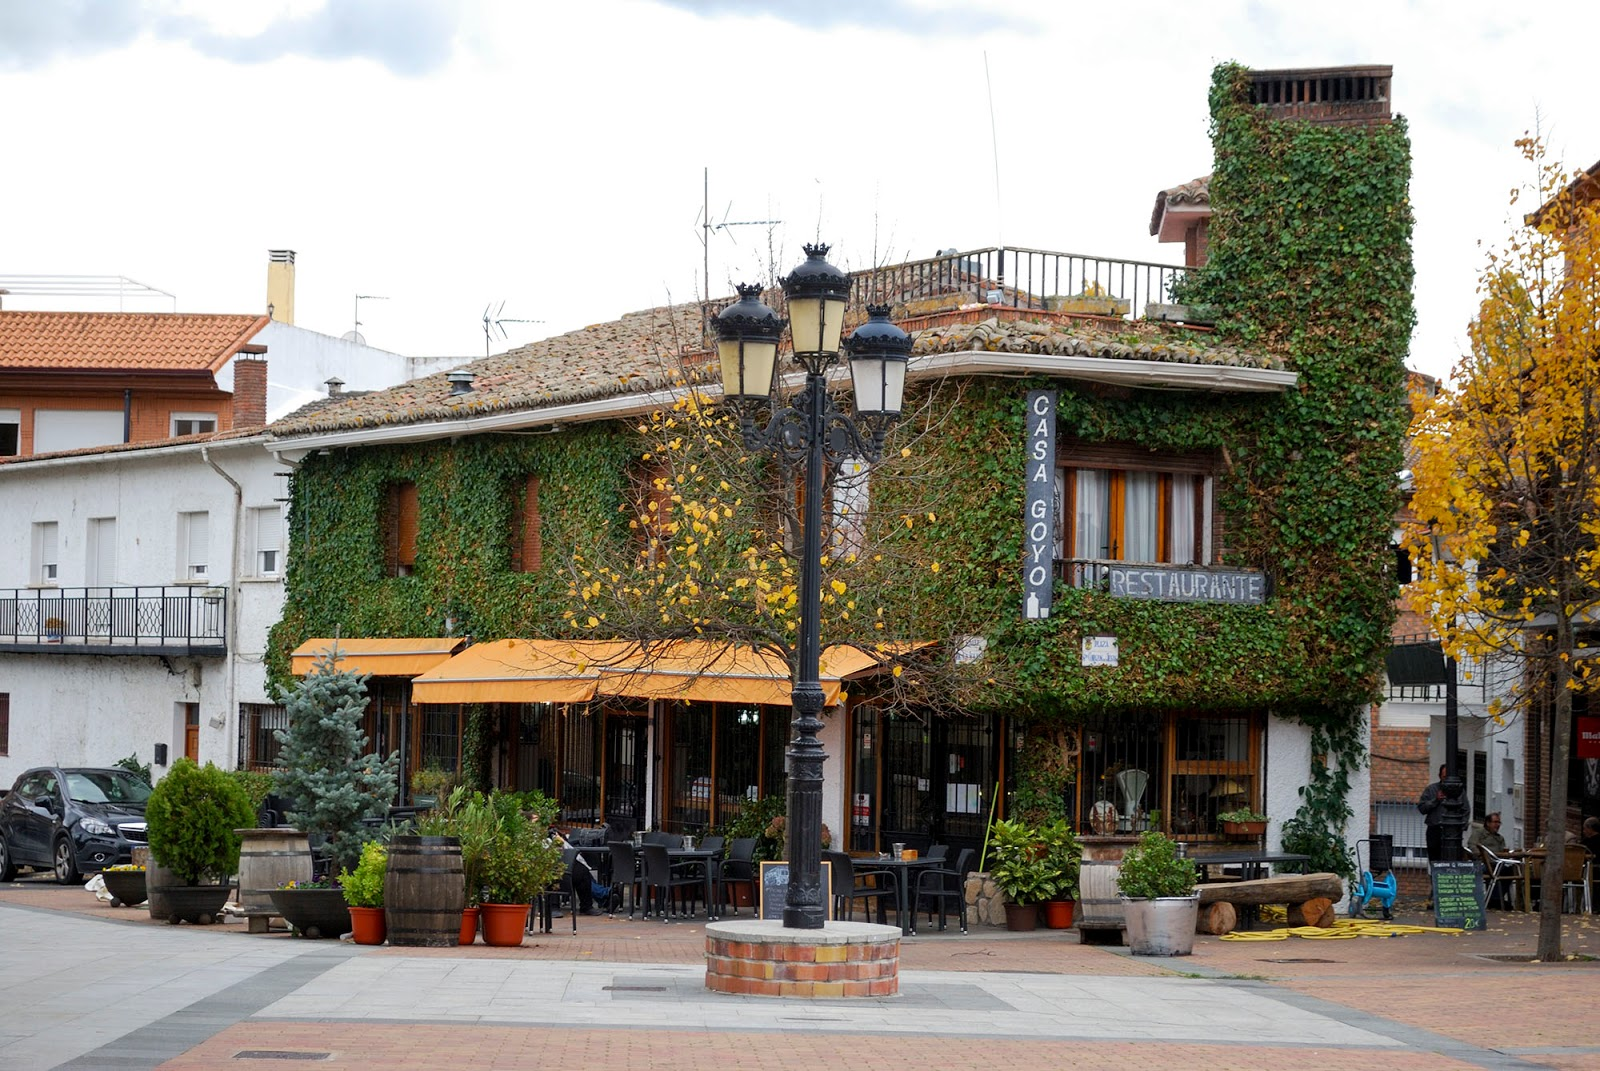 madrid manzanares real castle castillo natural park nature hiking trail day trip historical site spain restaurant